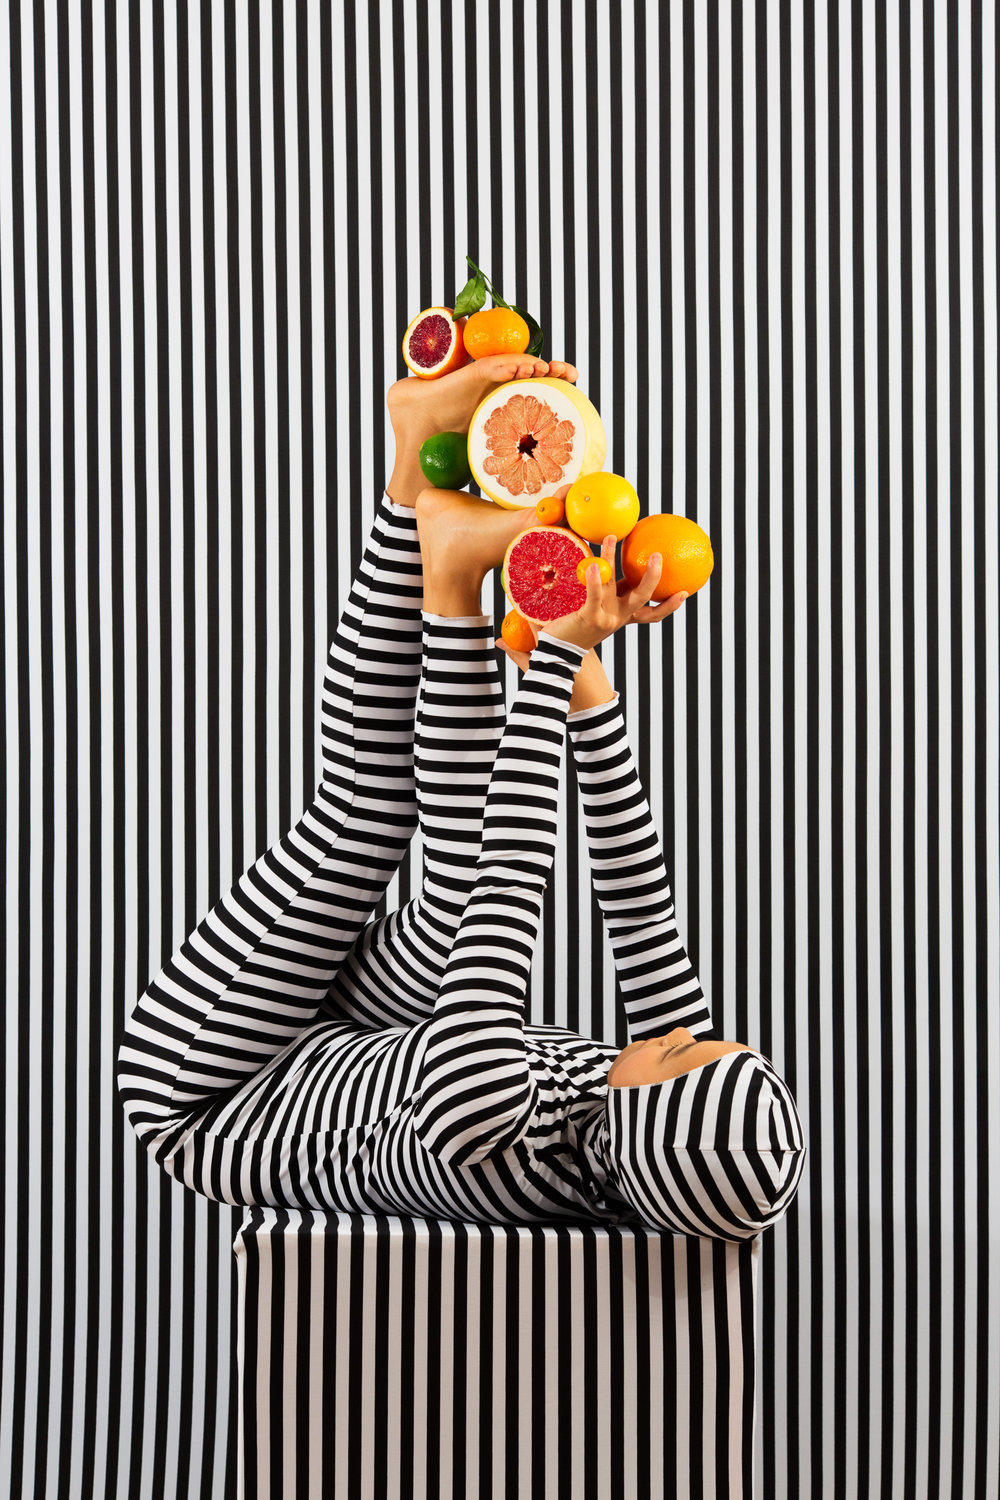 An Arrangement (Stripes Case Study 6)   2018, archival pigment print 91.5 x 61 cm / 36 x 24 in. Edition of 3